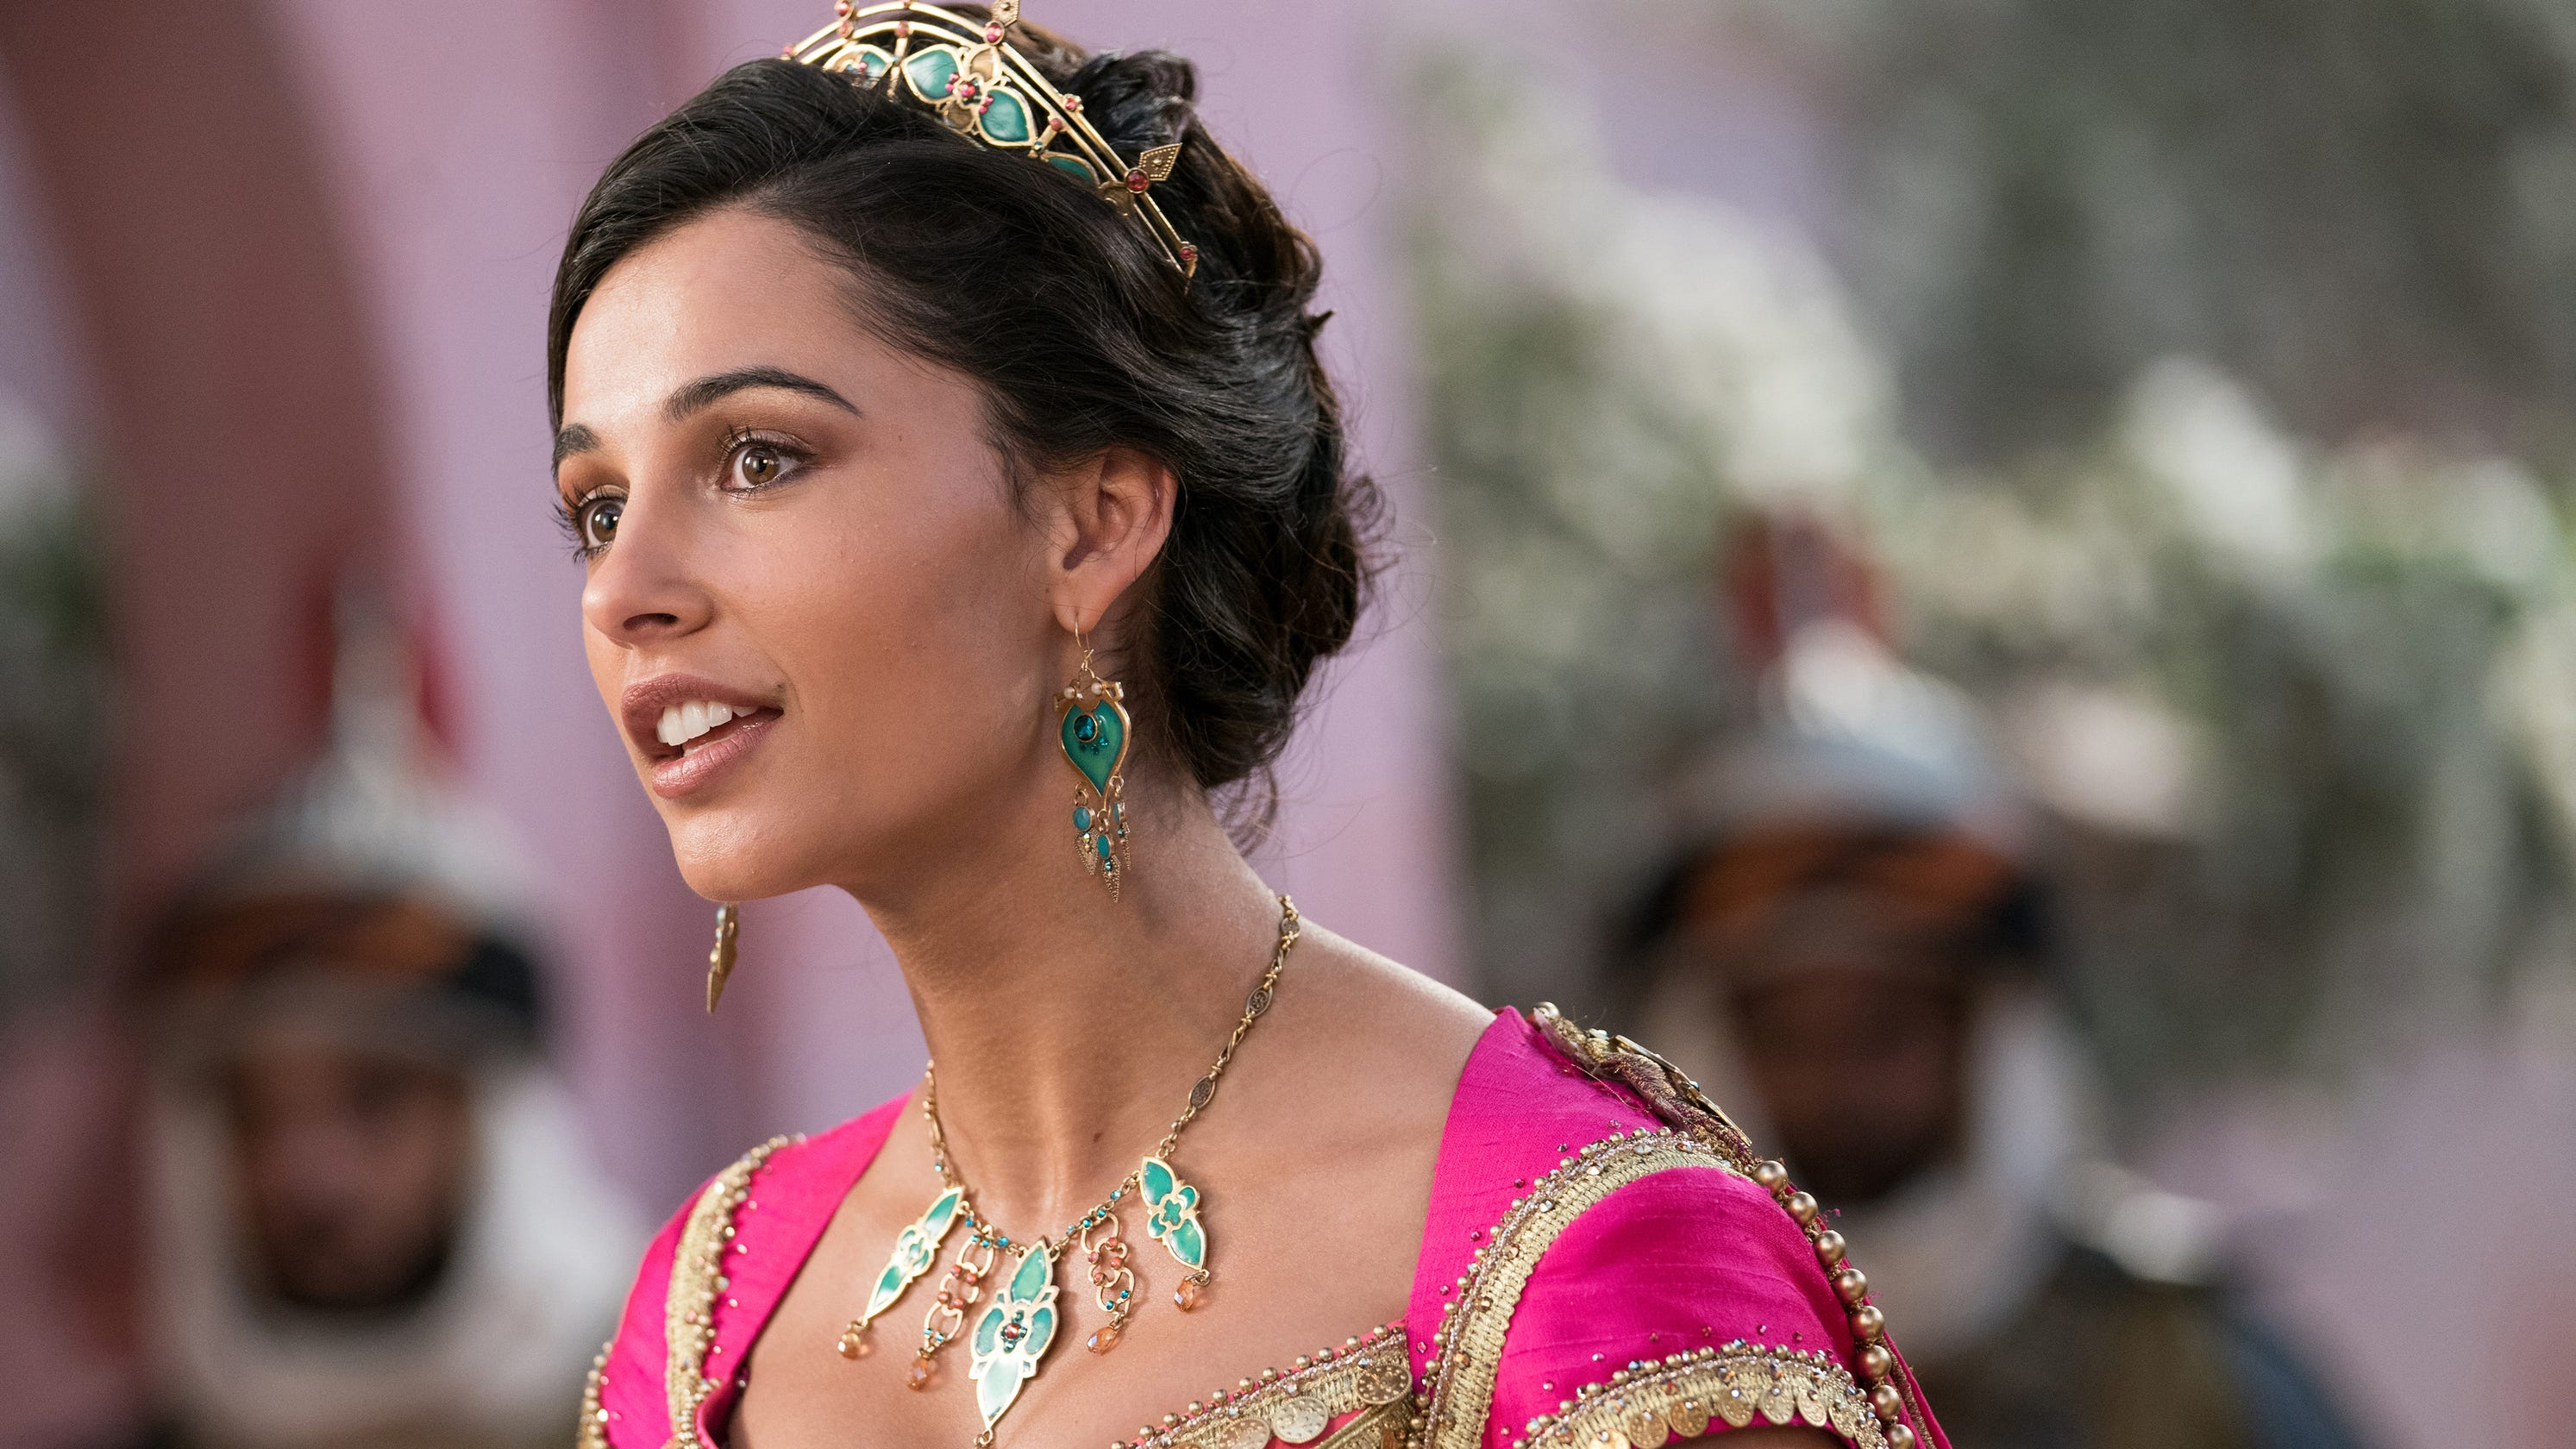 Movie Poster 2019: 'Aladdin' Is A Whole New World For Latest Princess Jasmine